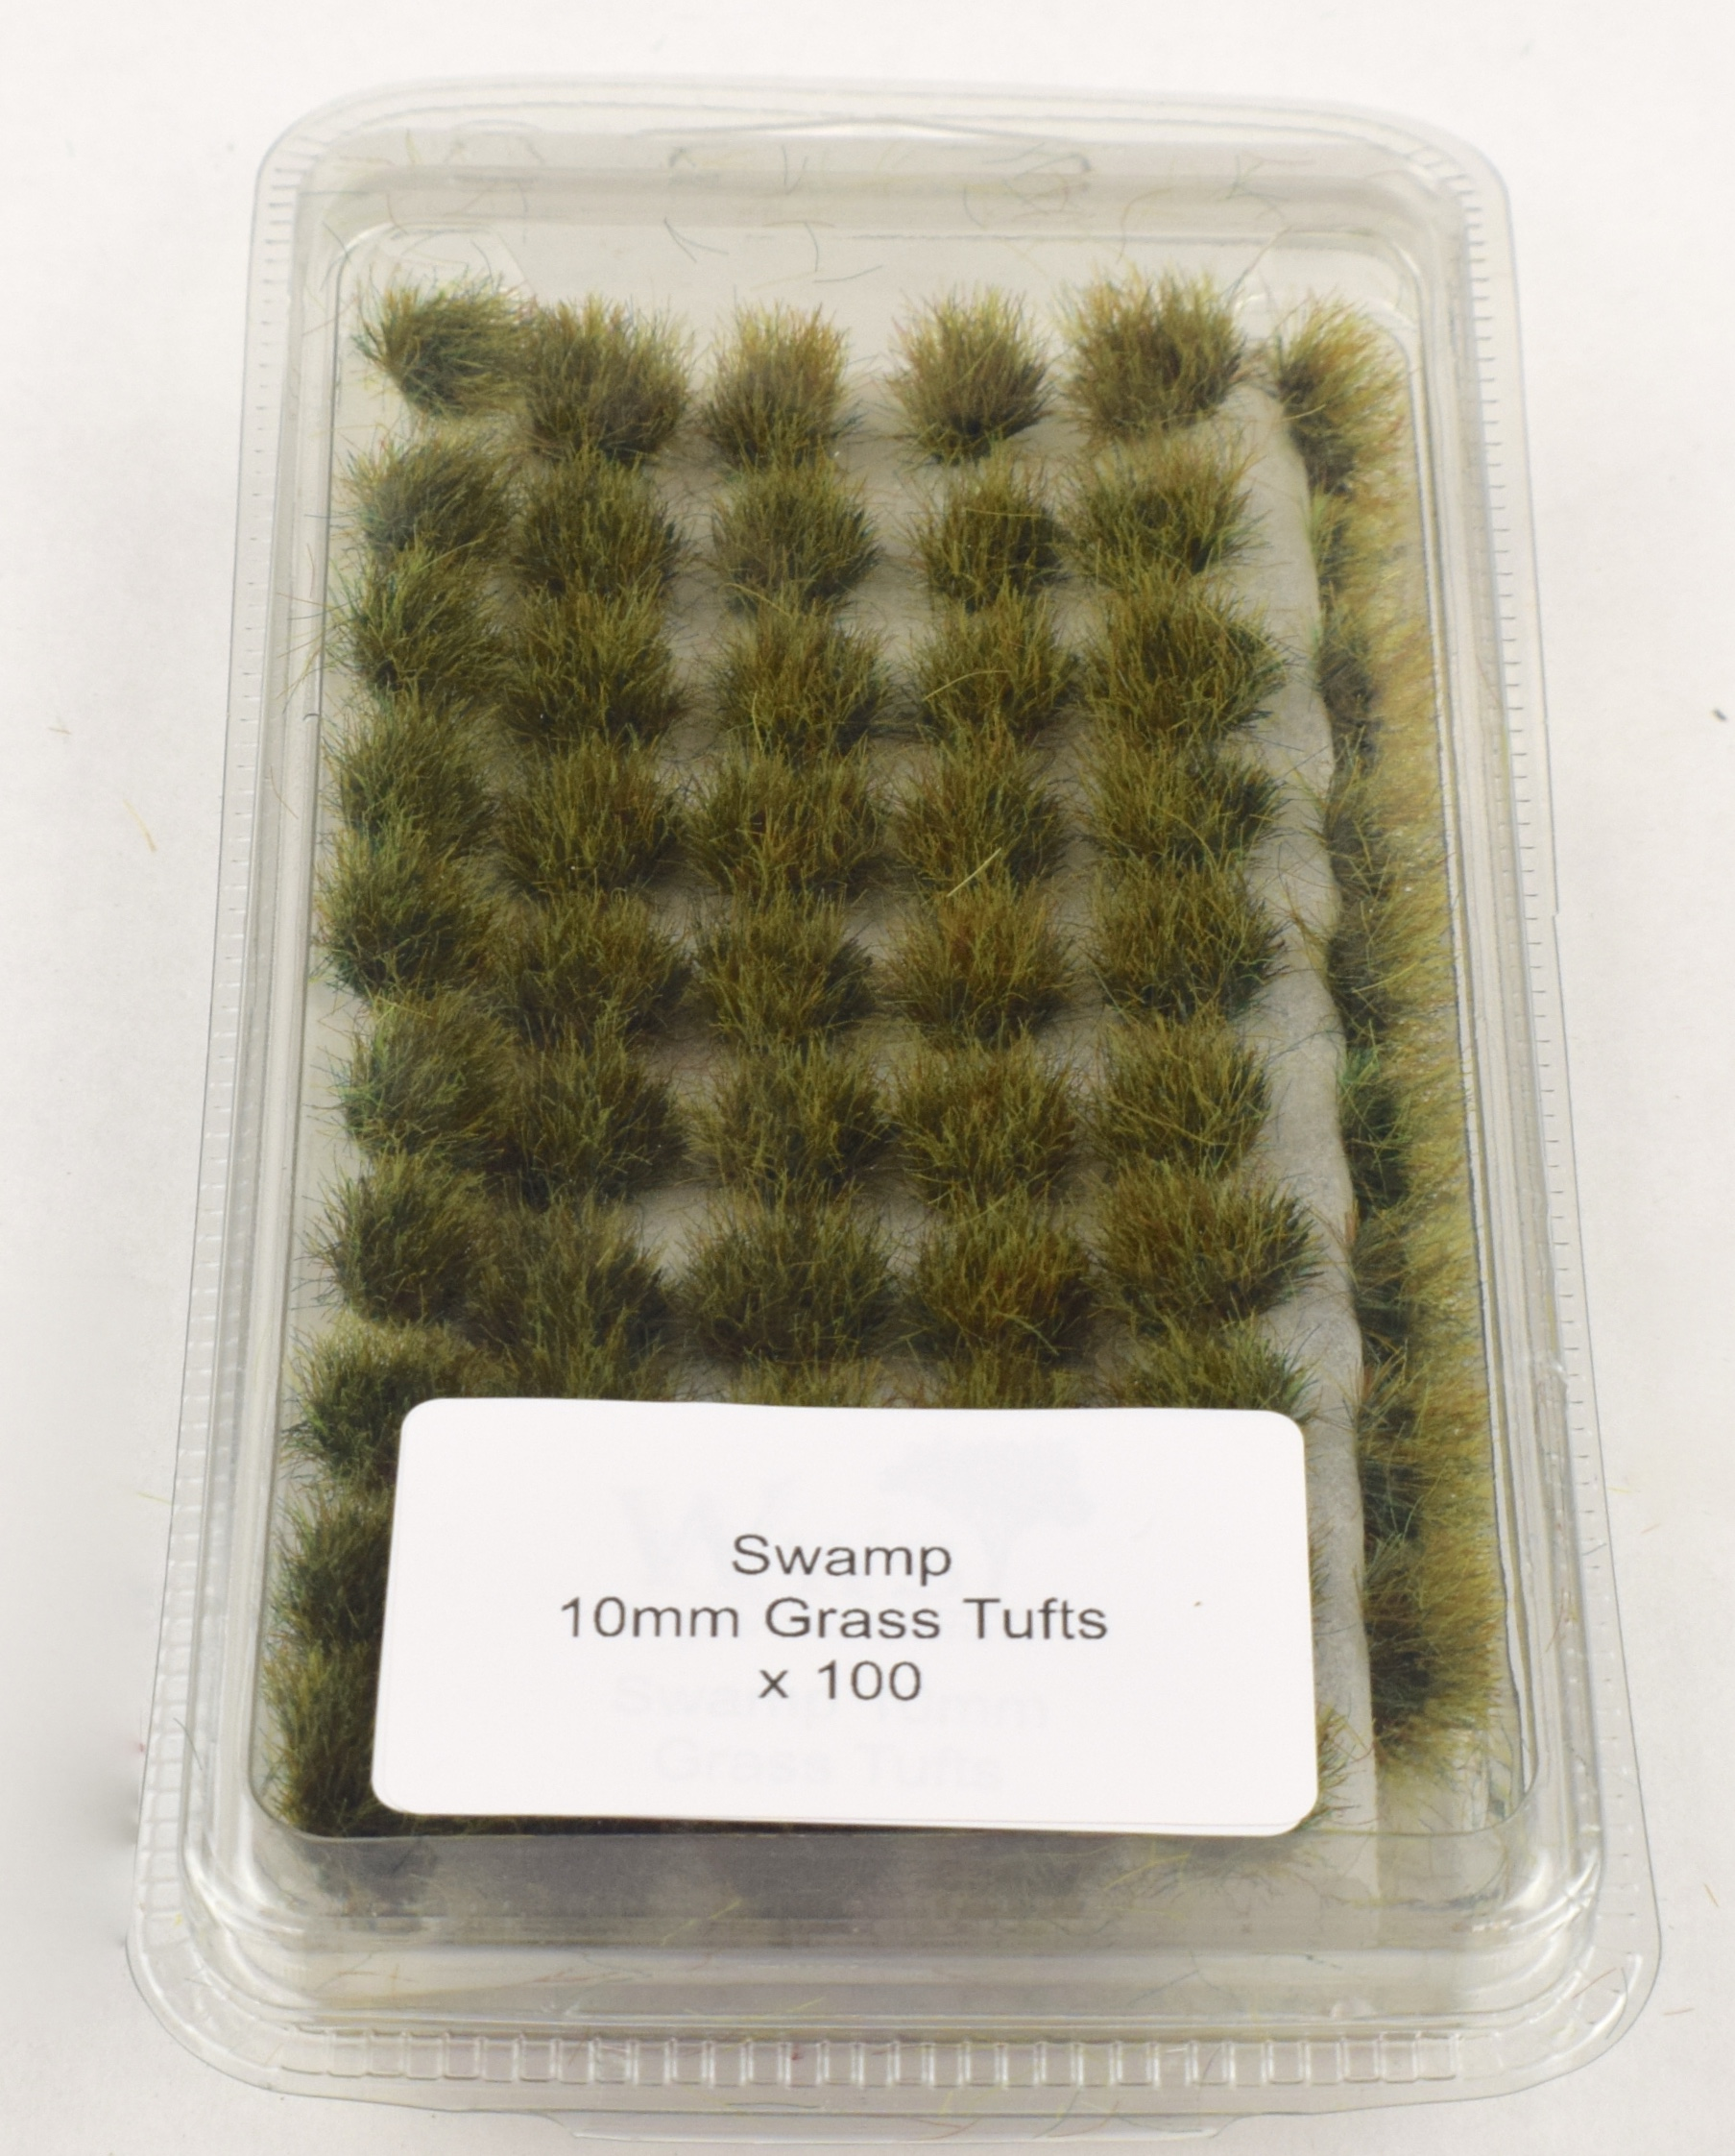 Battle Ground 10mm Grass Tufts Swamp Tufts 100